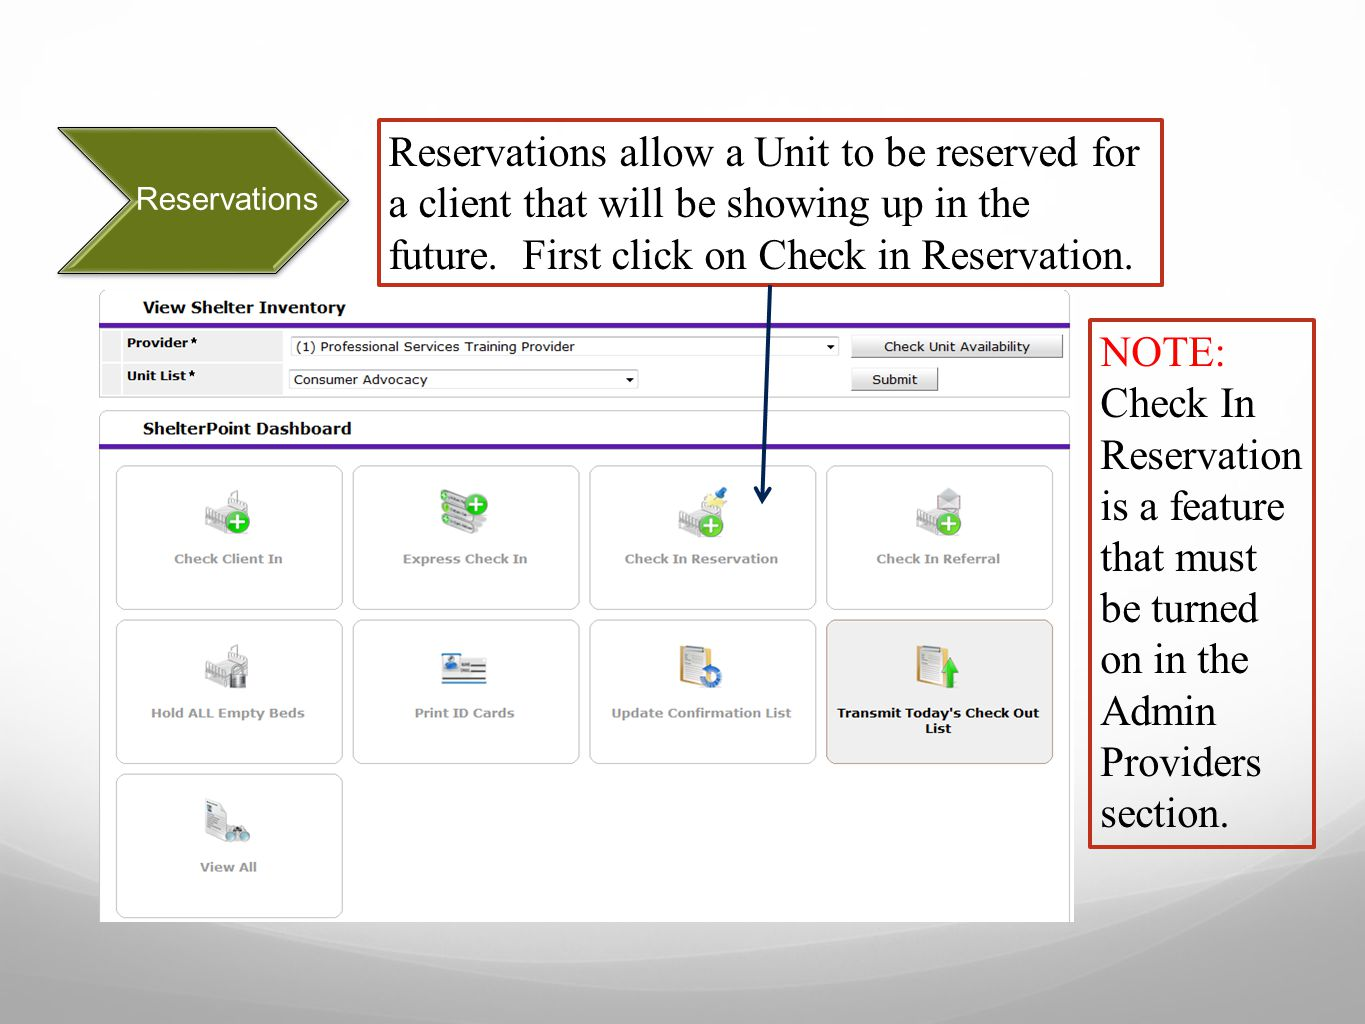 Reservations Reservations allow a Unit to be reserved for a client that will be showing up in the future.